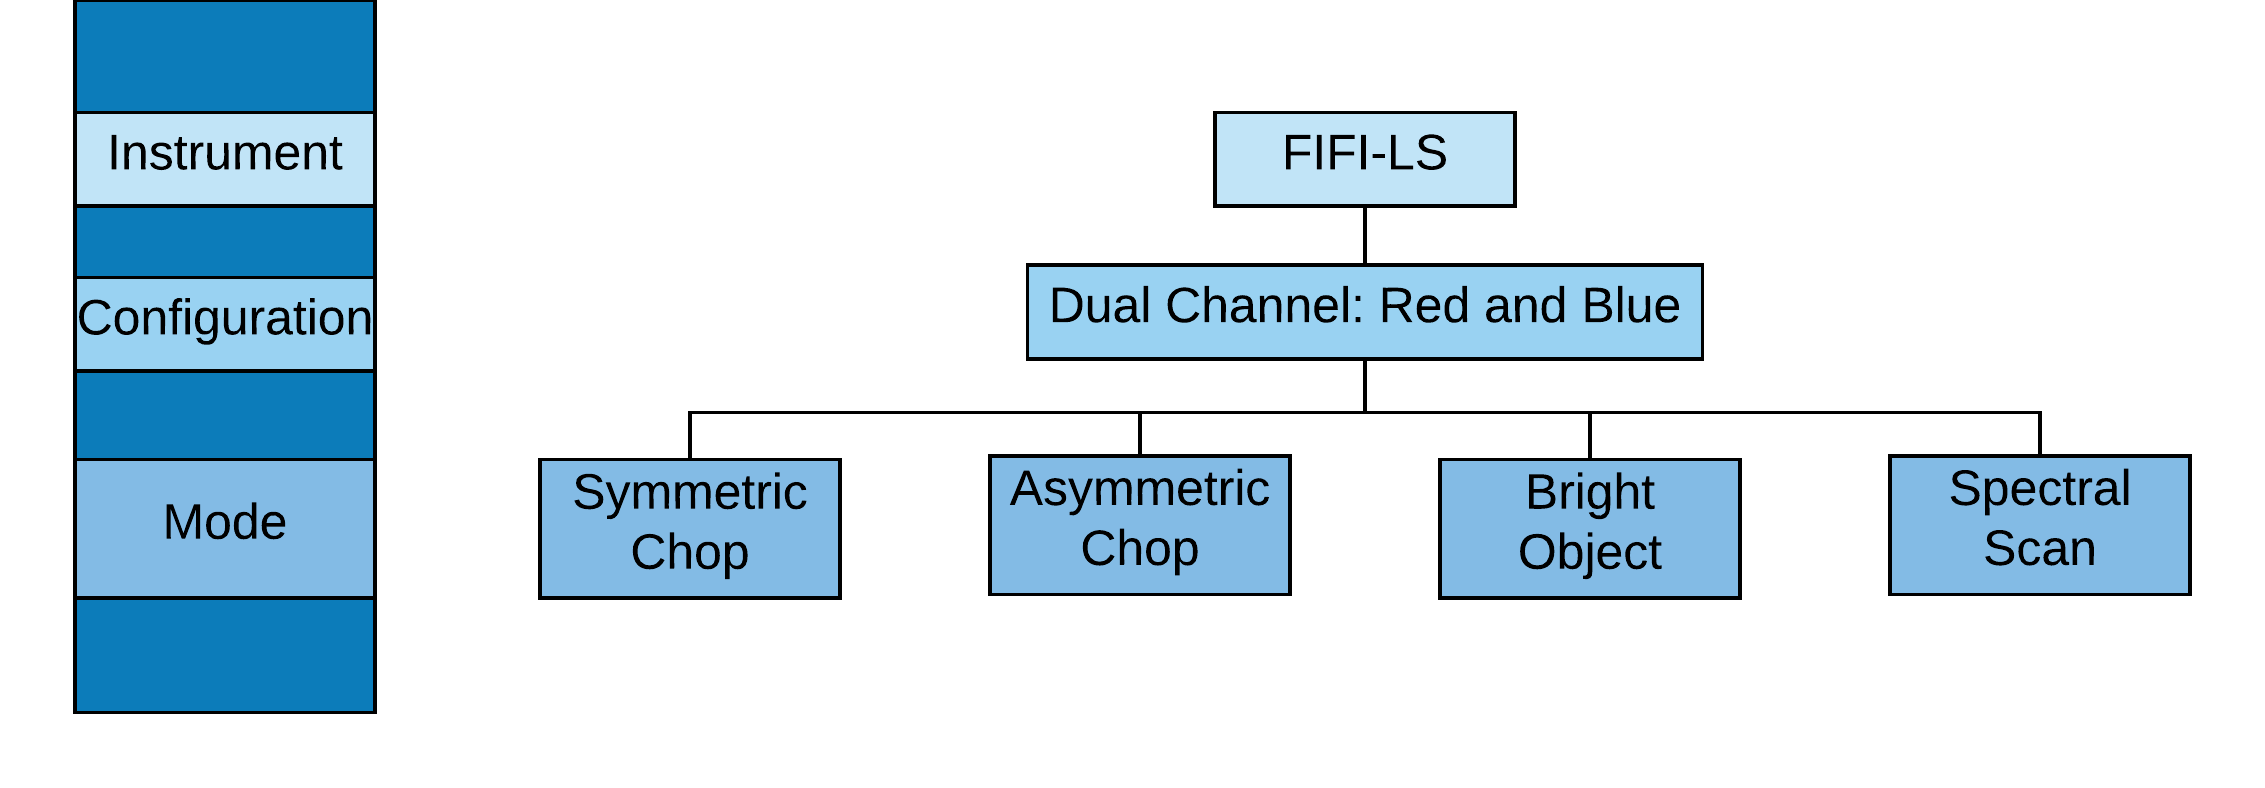 FIFI-LS configuration and mode flowchart diagram